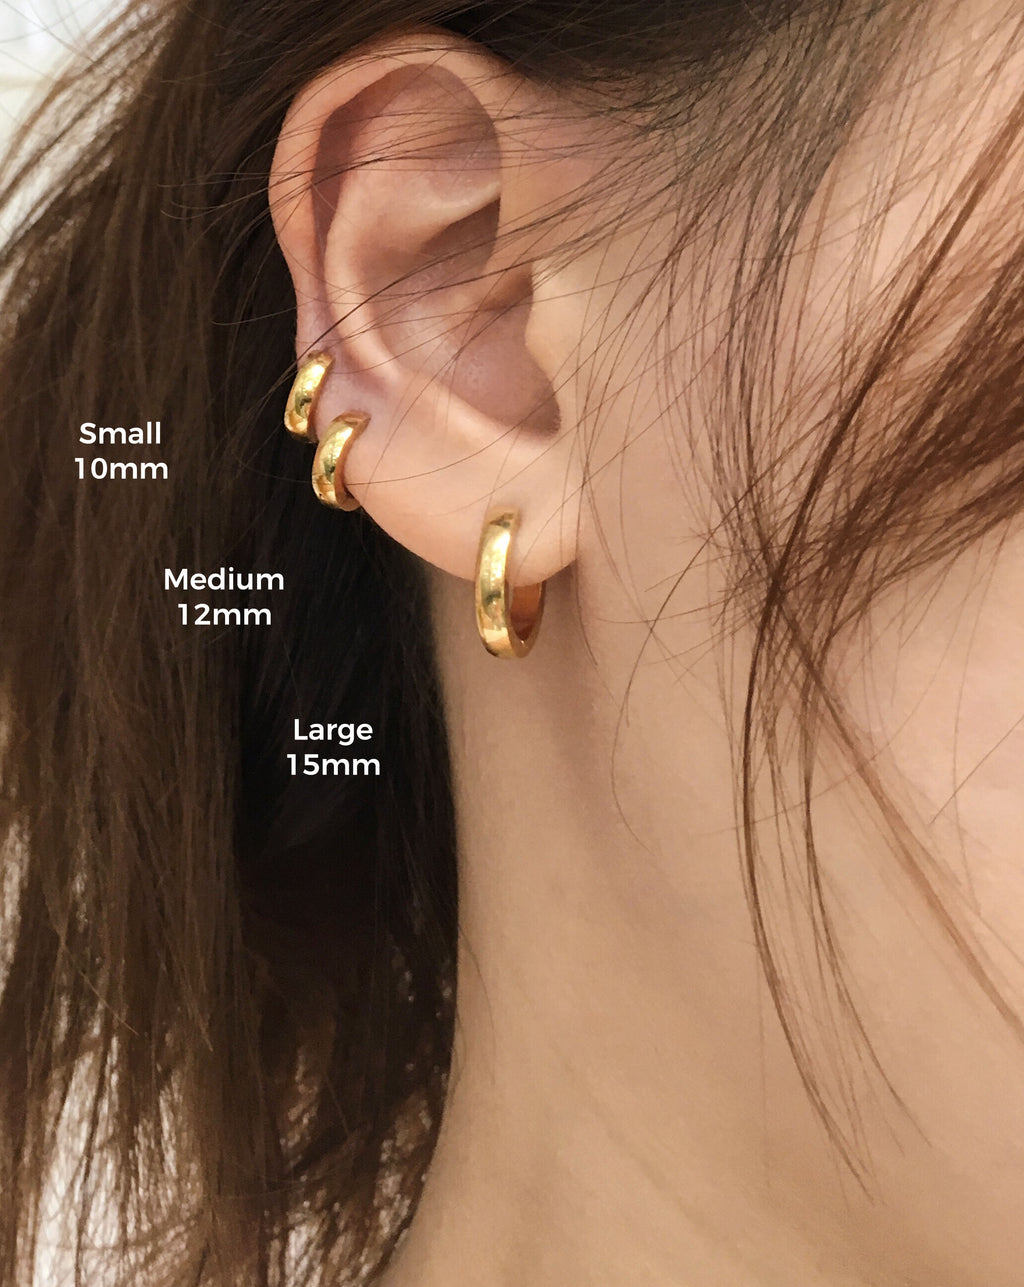 cc0618ae5 Tiny bold gold hoops perfect for multiple ear piercings - The Hexad.jpg.  Classic baby size endless hoops - Ise huggie earrings ...